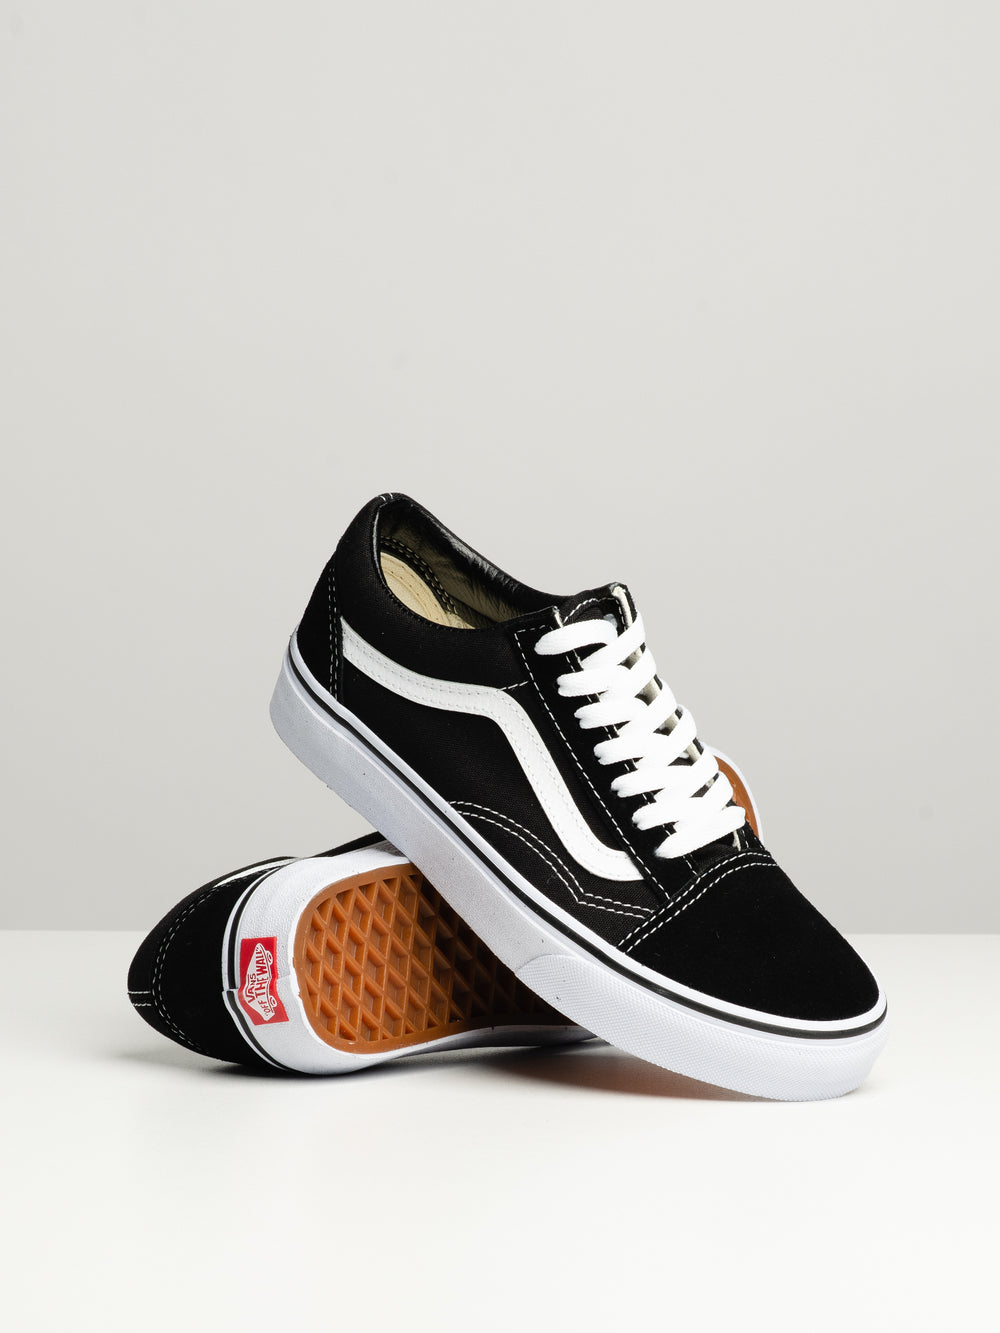 WOMENS OLD SKOOL CANVAS SHOES SNEAKER